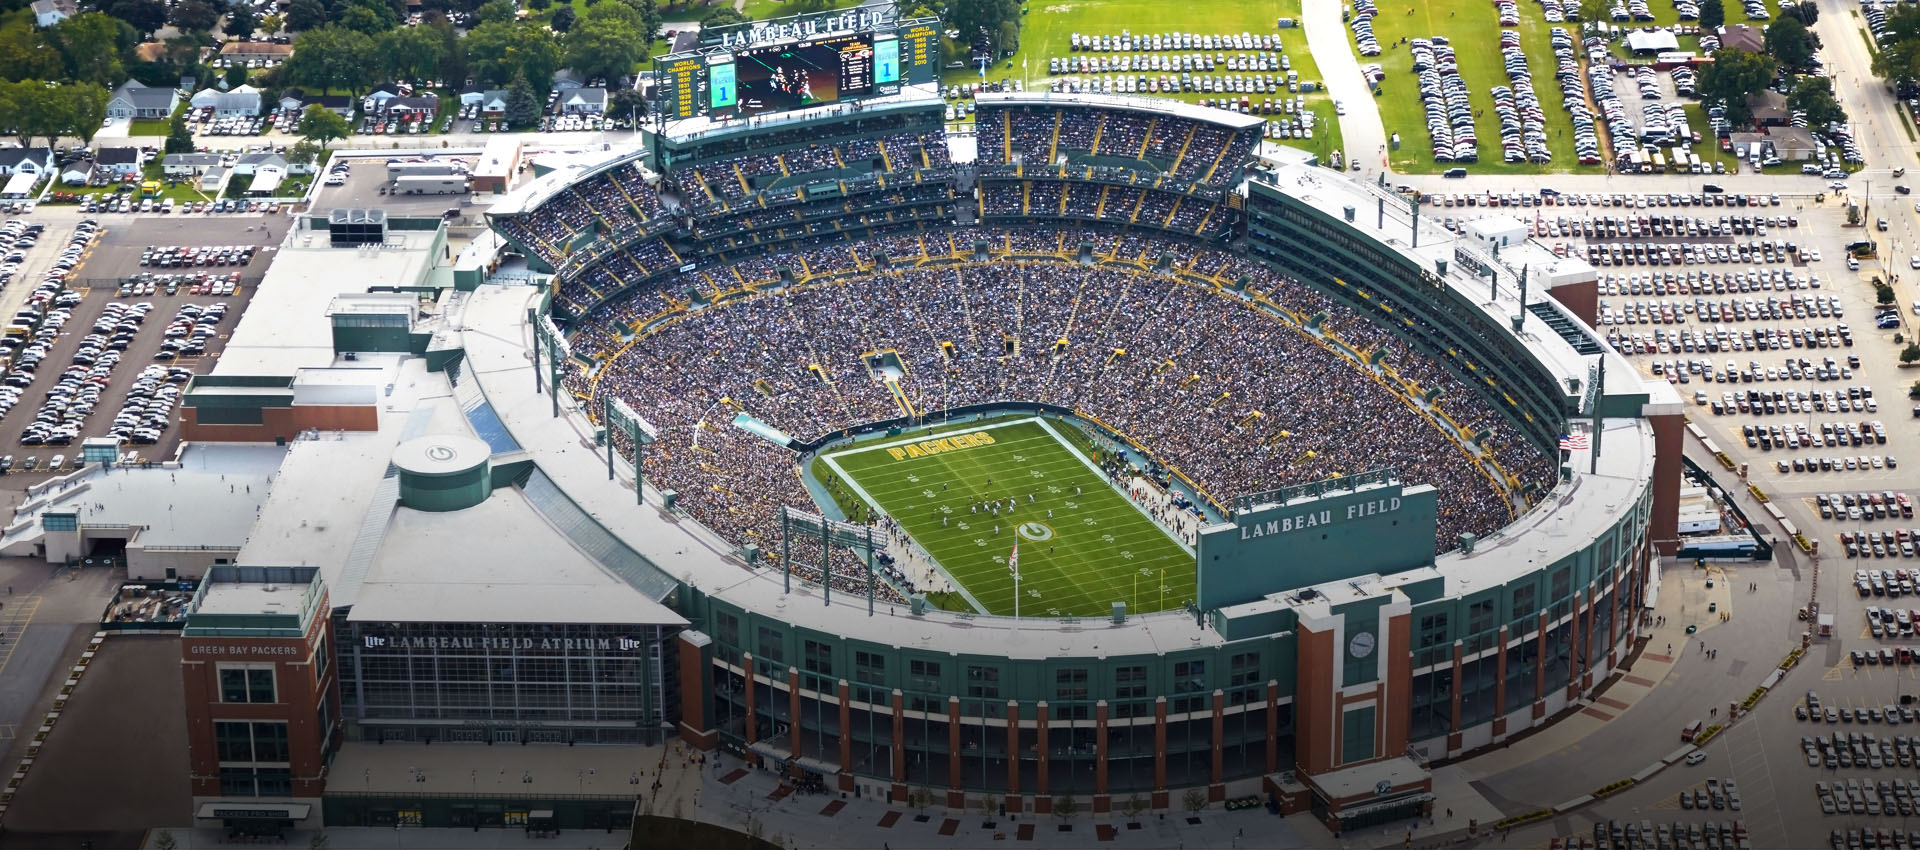 fbc31a92980 Badgers fans reminded of Lambeau Field carry-in policy